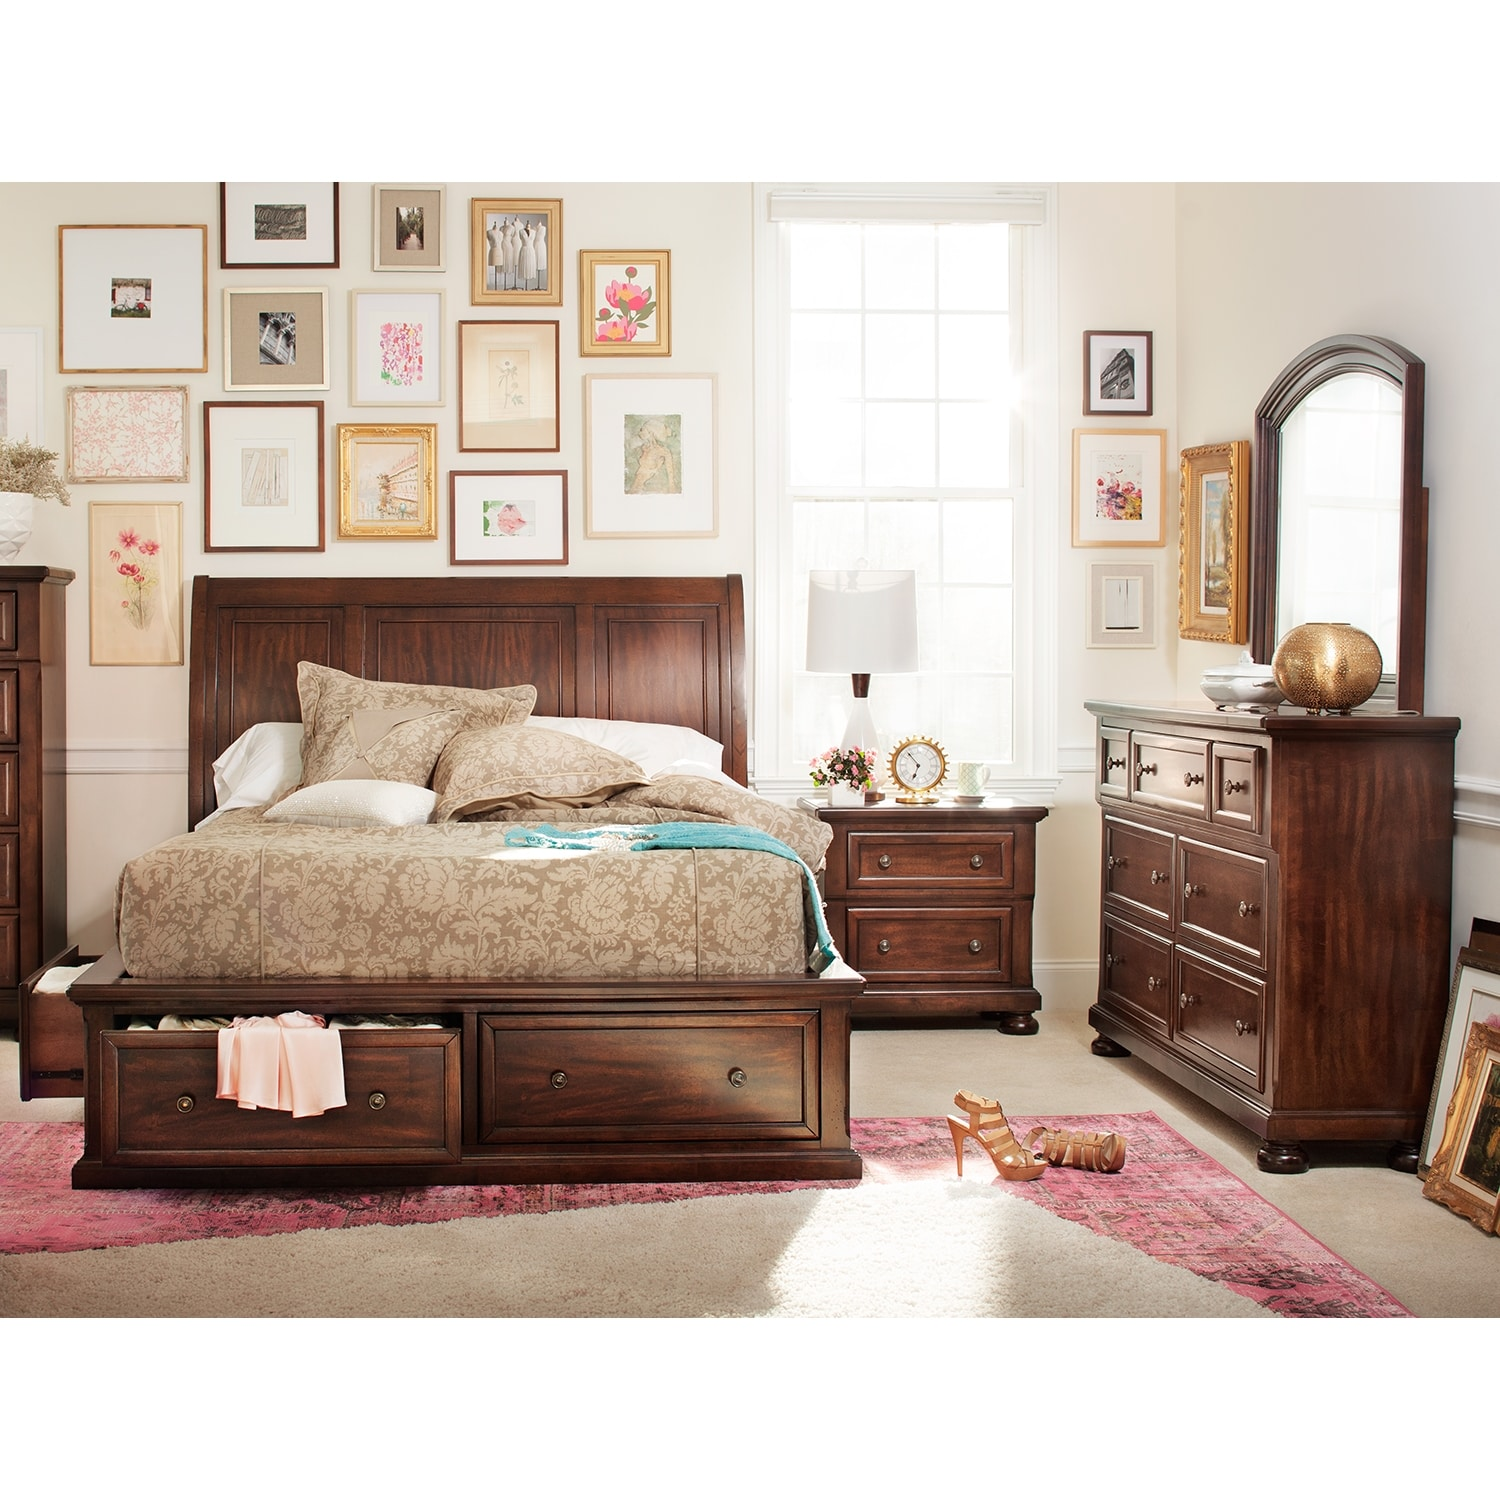 Hanover 6-Piece King Storage Bedroom Set